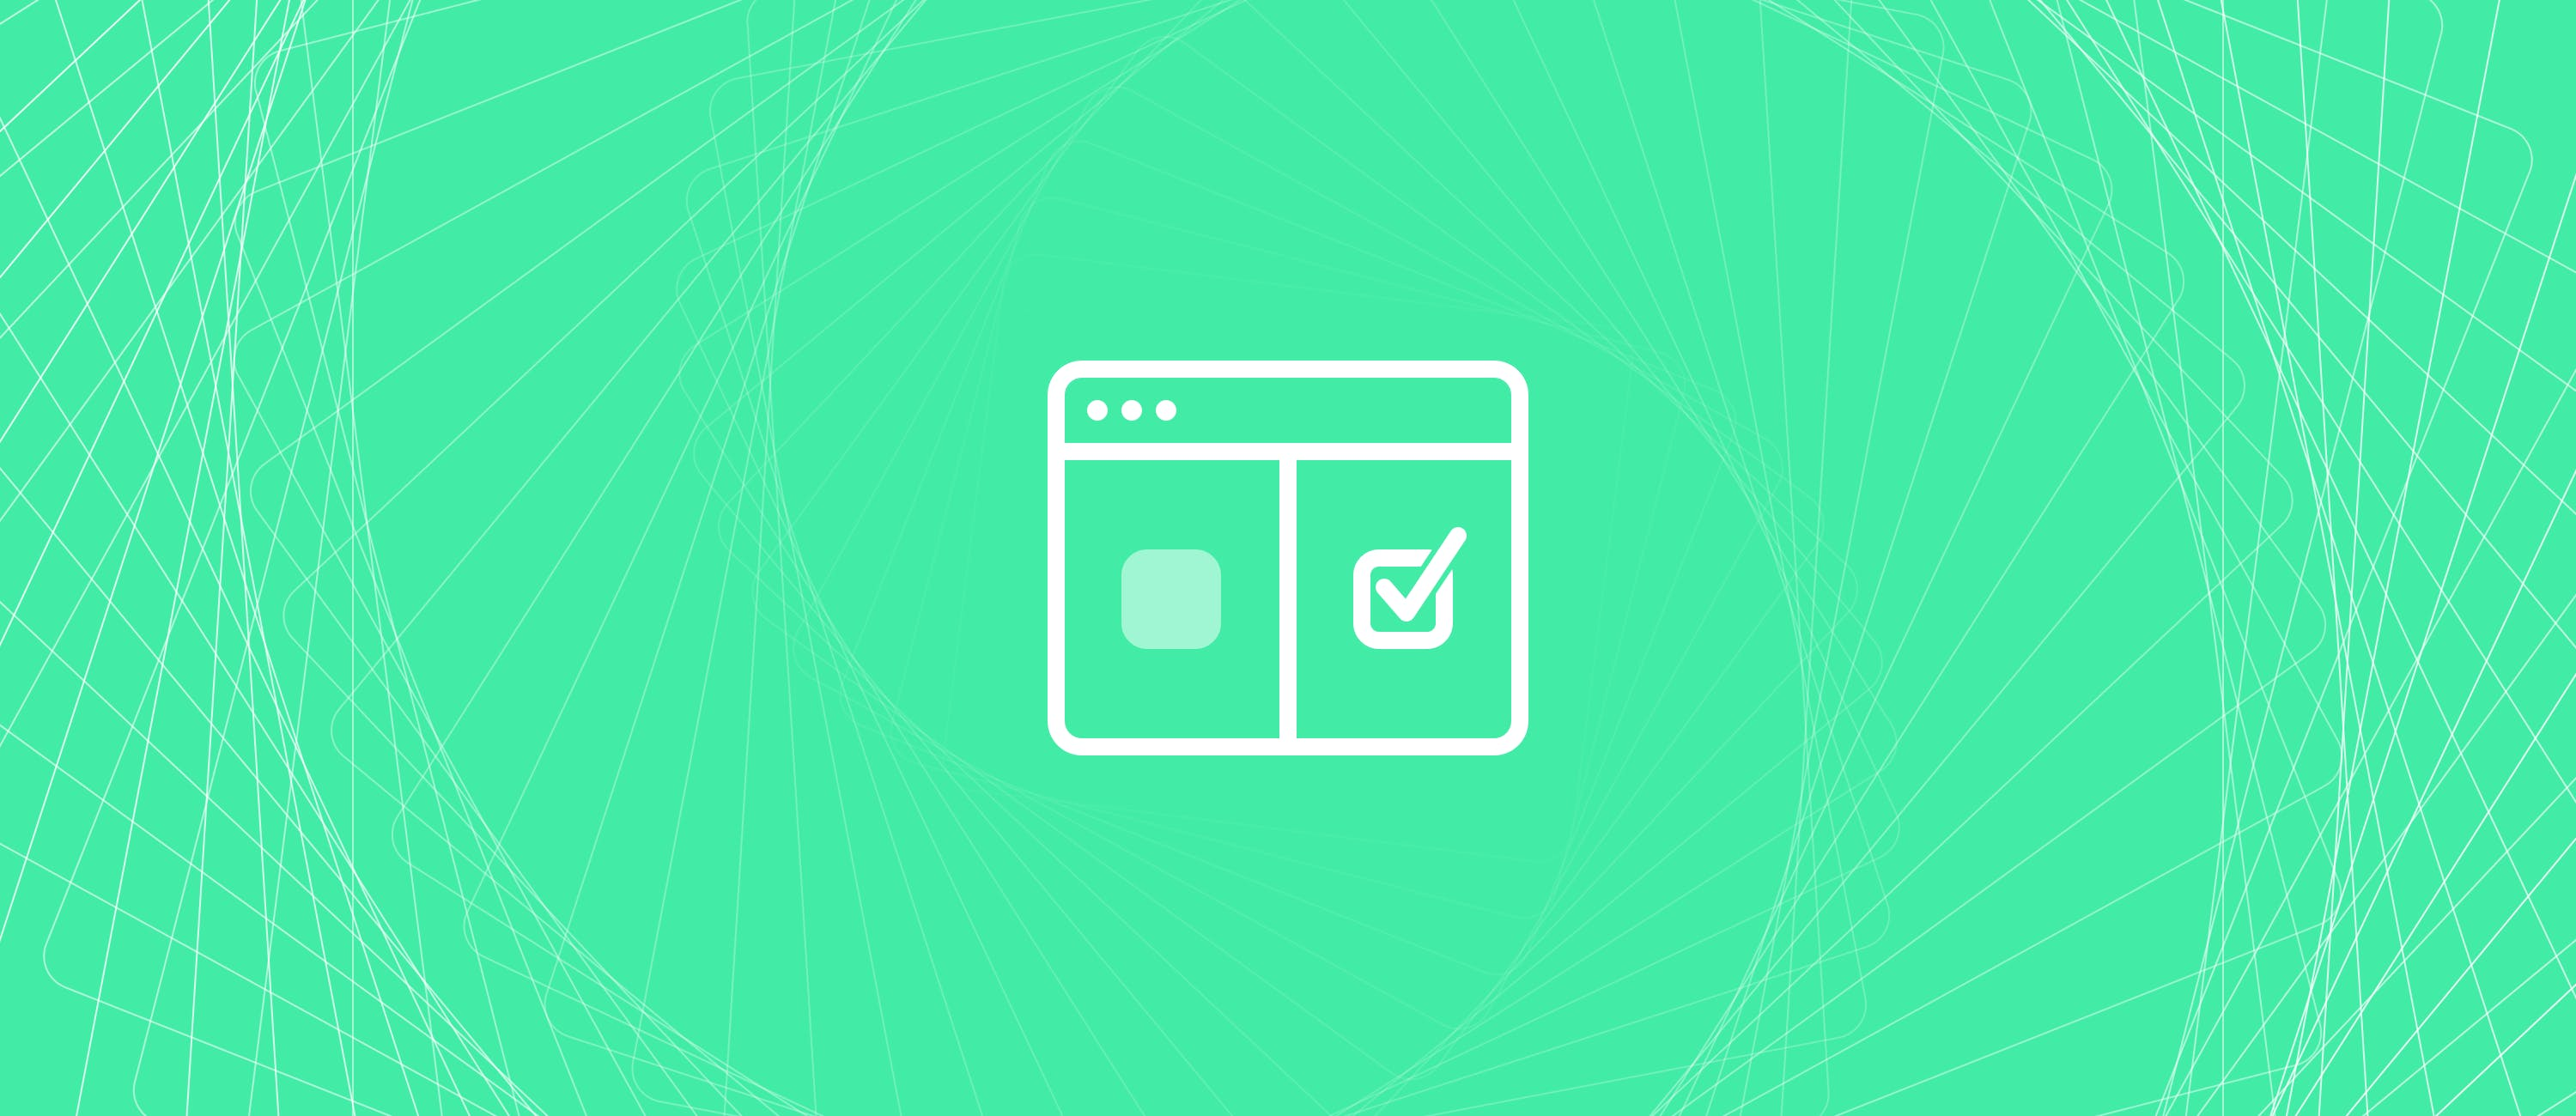 5 Things to A/B Test on Your Website